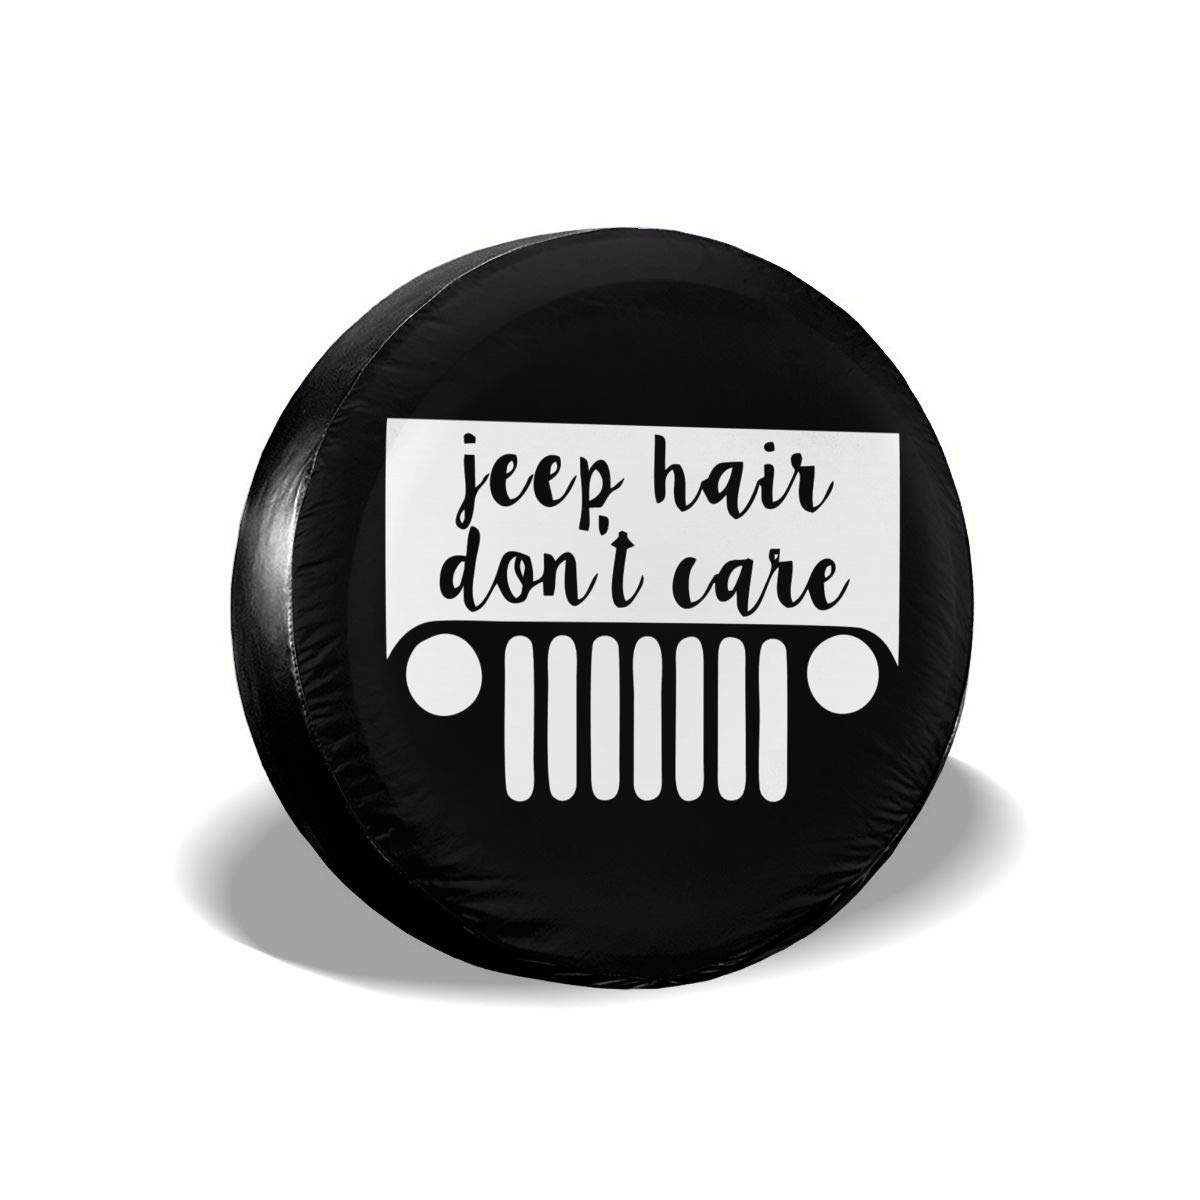 14 15 16 17 I M Black of The Family Spare Tire Cover Polyester Universal Dust-Proof Waterproof Wheel Covers for Jeep Trailer RV SUV Truck and Many Vehicles